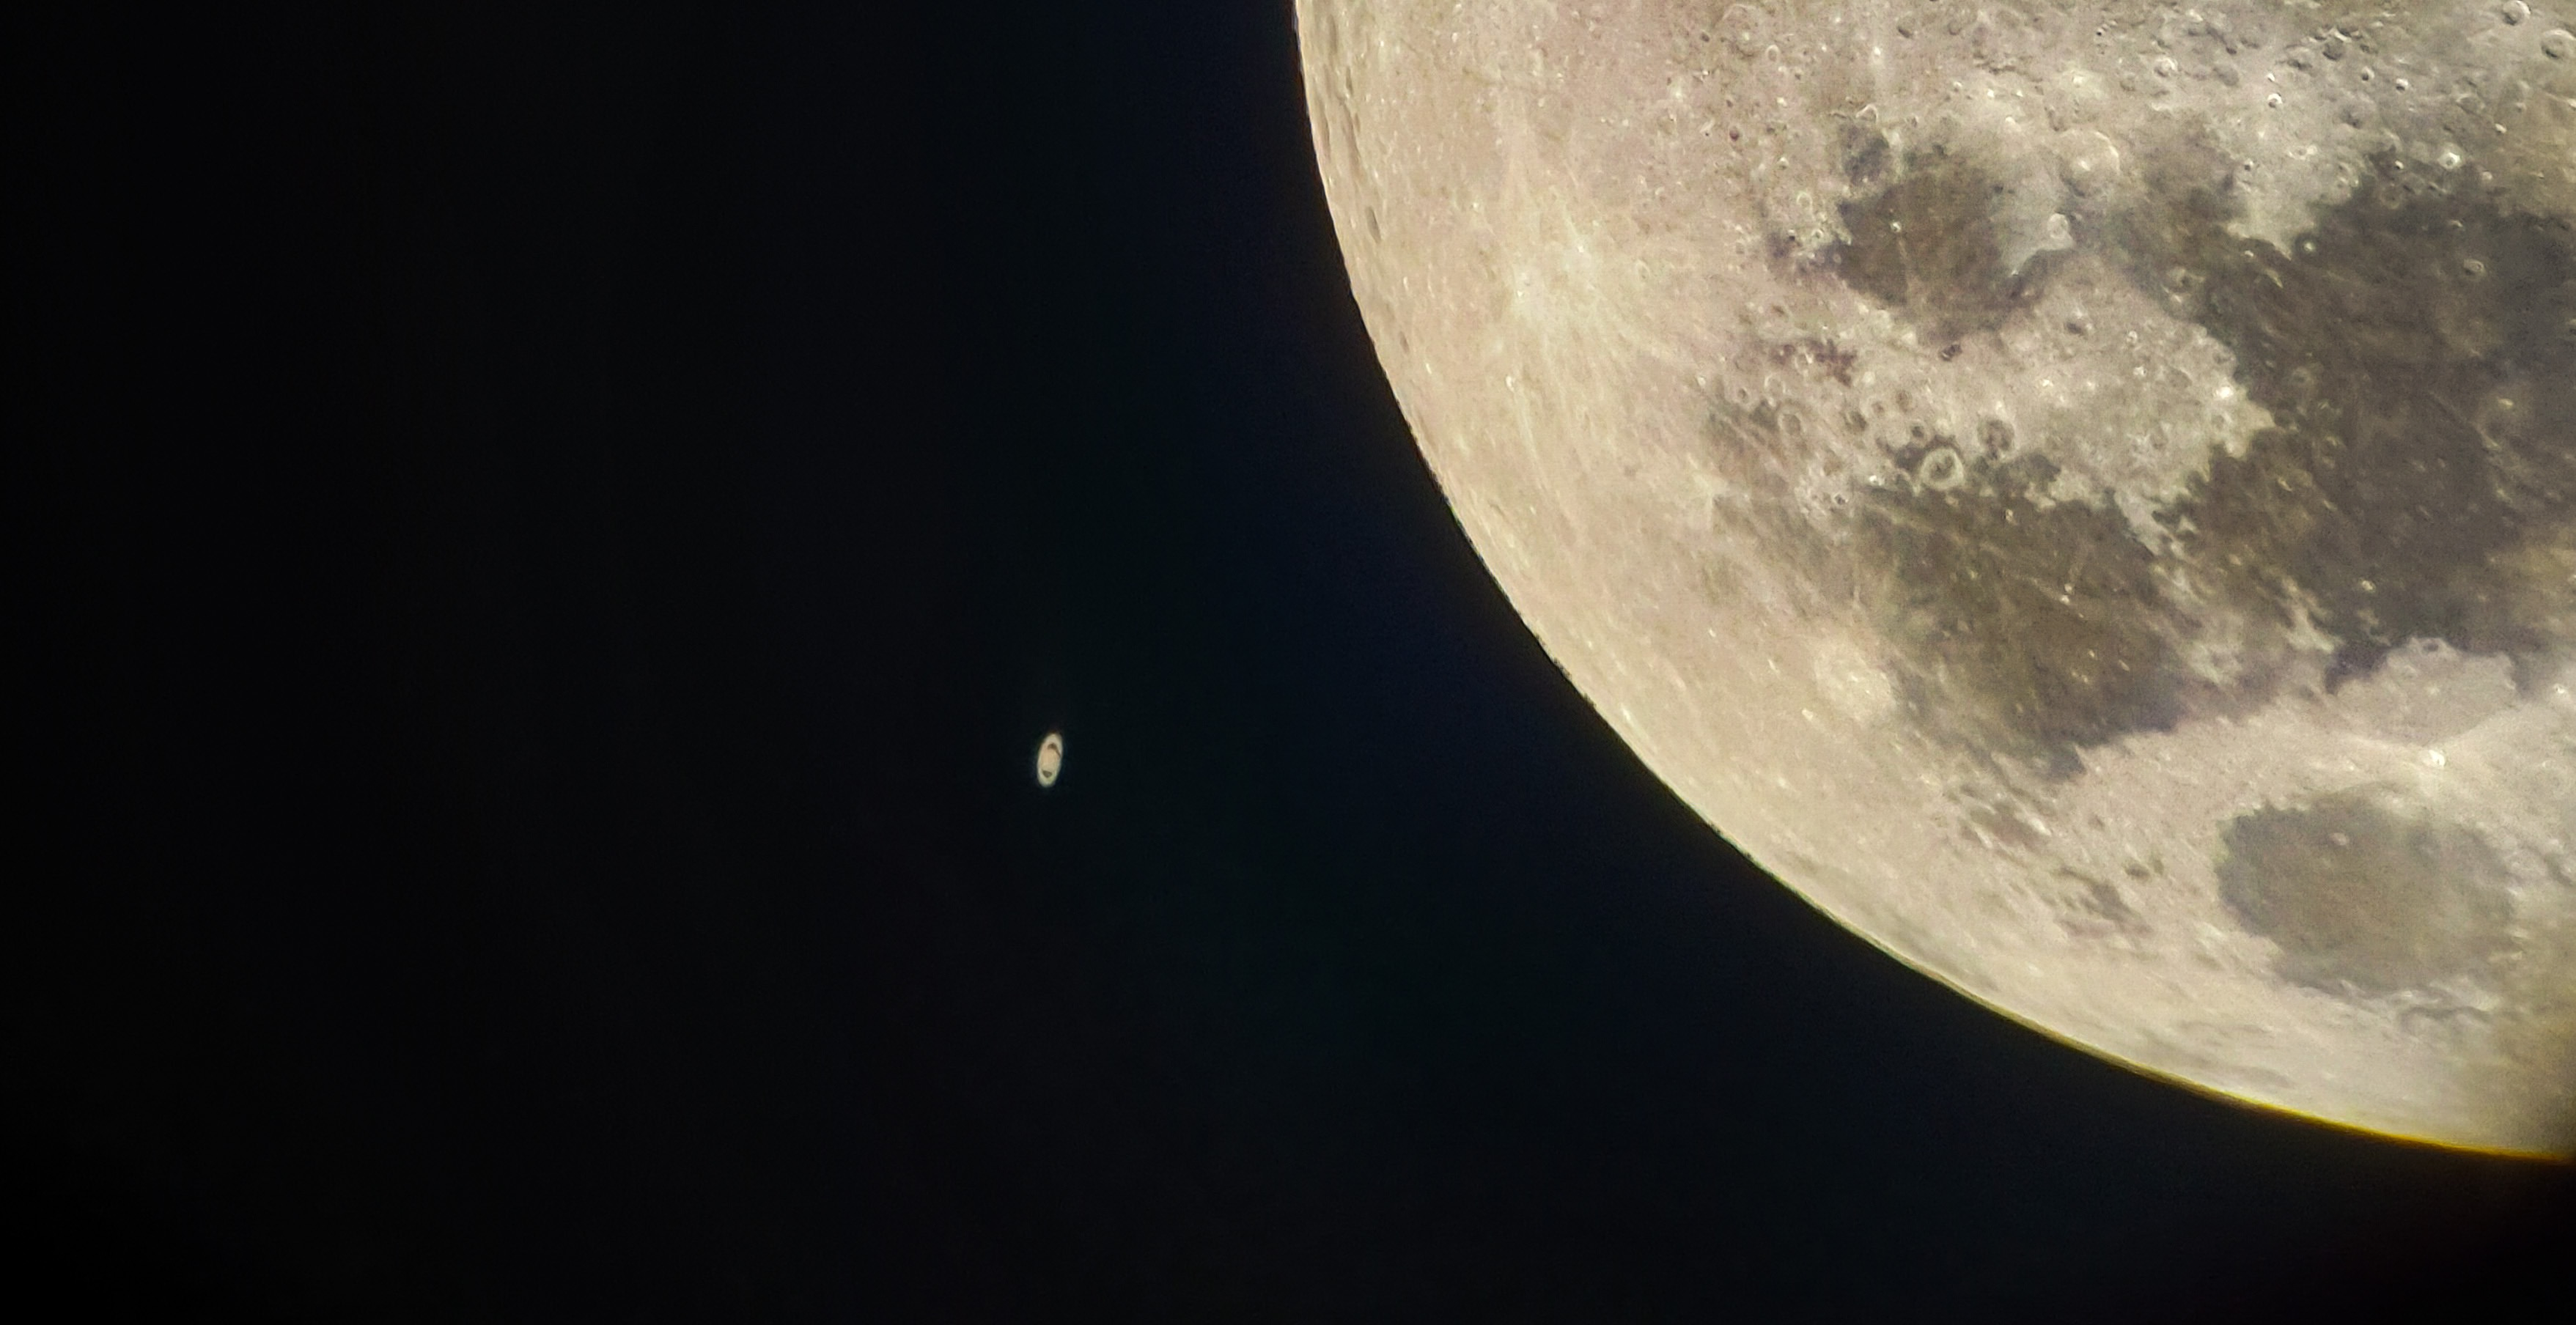 """Occultation of the Moon & Saturn 2018-to me to get this picture was an absolute highlight. I was using my Skywatcher Dobson 8"""" with Samsung gs7 phone. Location was Perth, Western Australia. I hope you enjoy."""